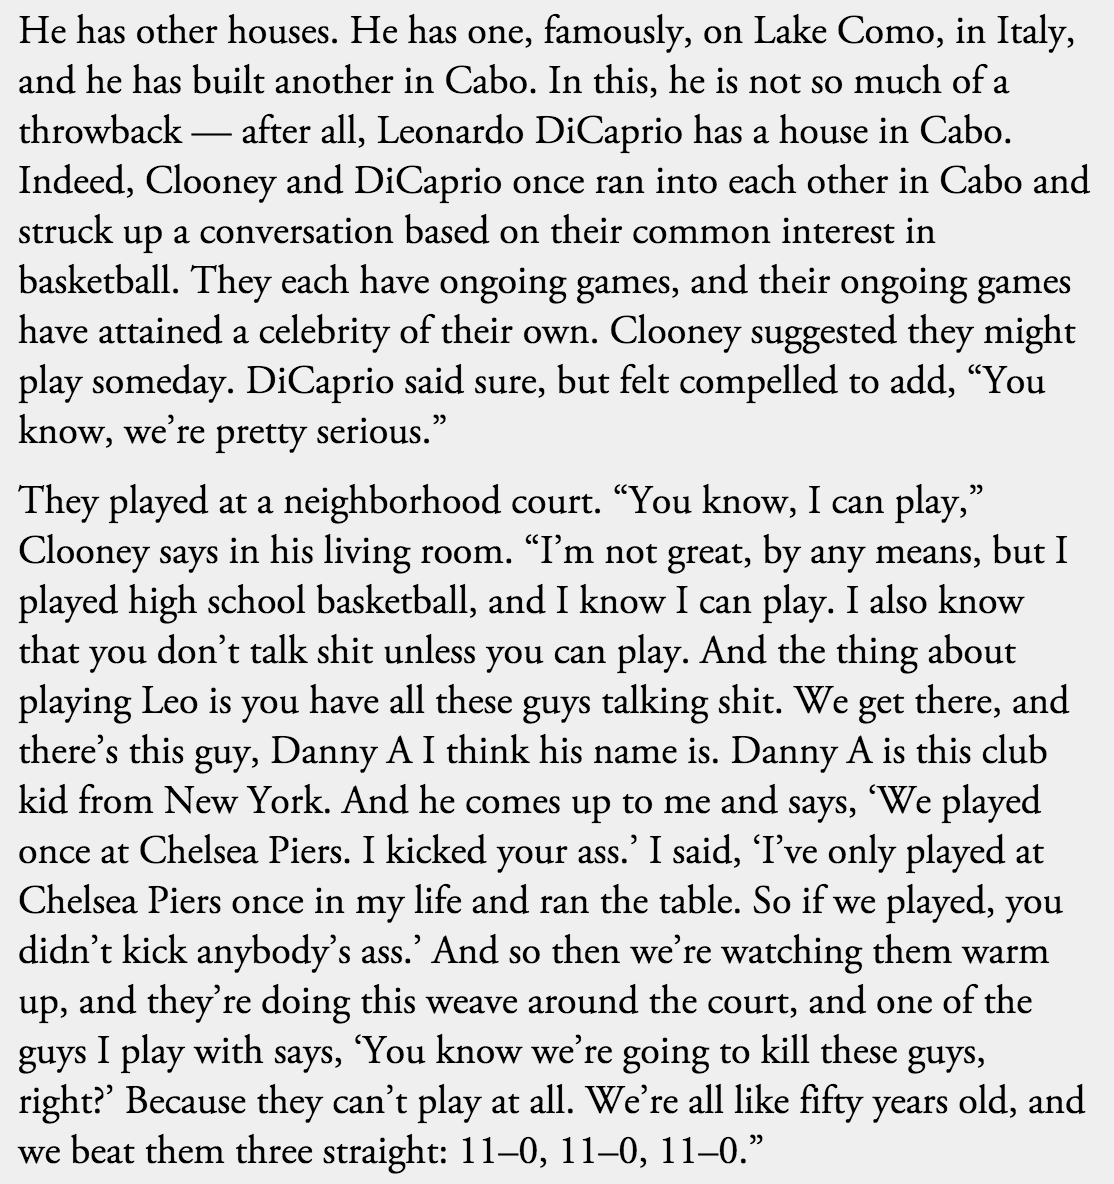 Never forget George Clooney's story about running Leonardo DiCaprio and his club kid friends off the dang court. https://t.co/ik4uti2OI4